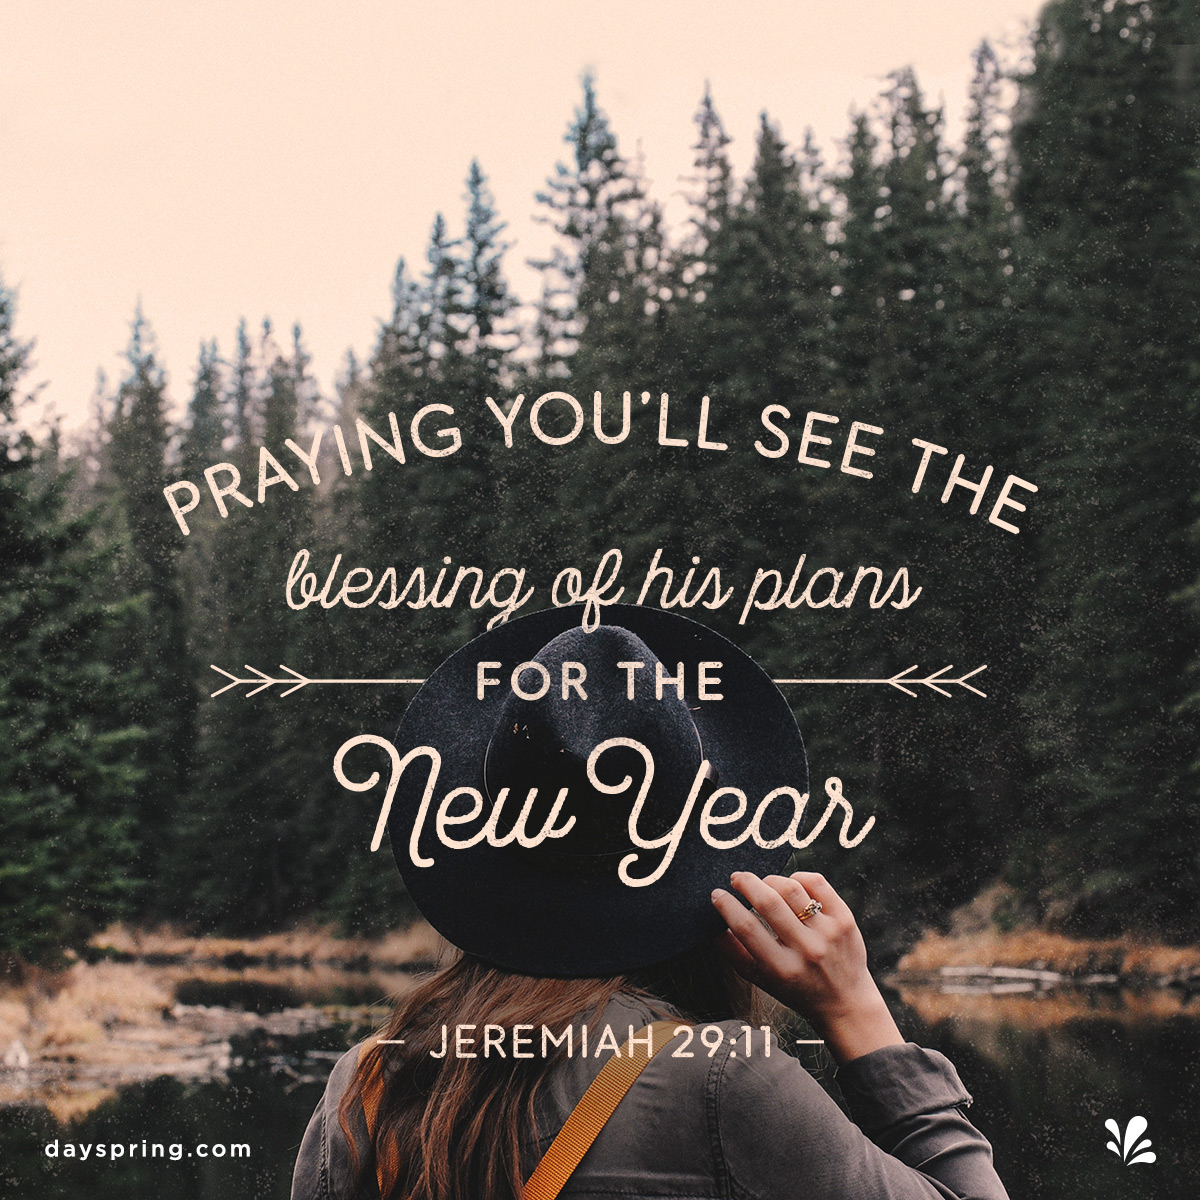 new year ecards dayspring